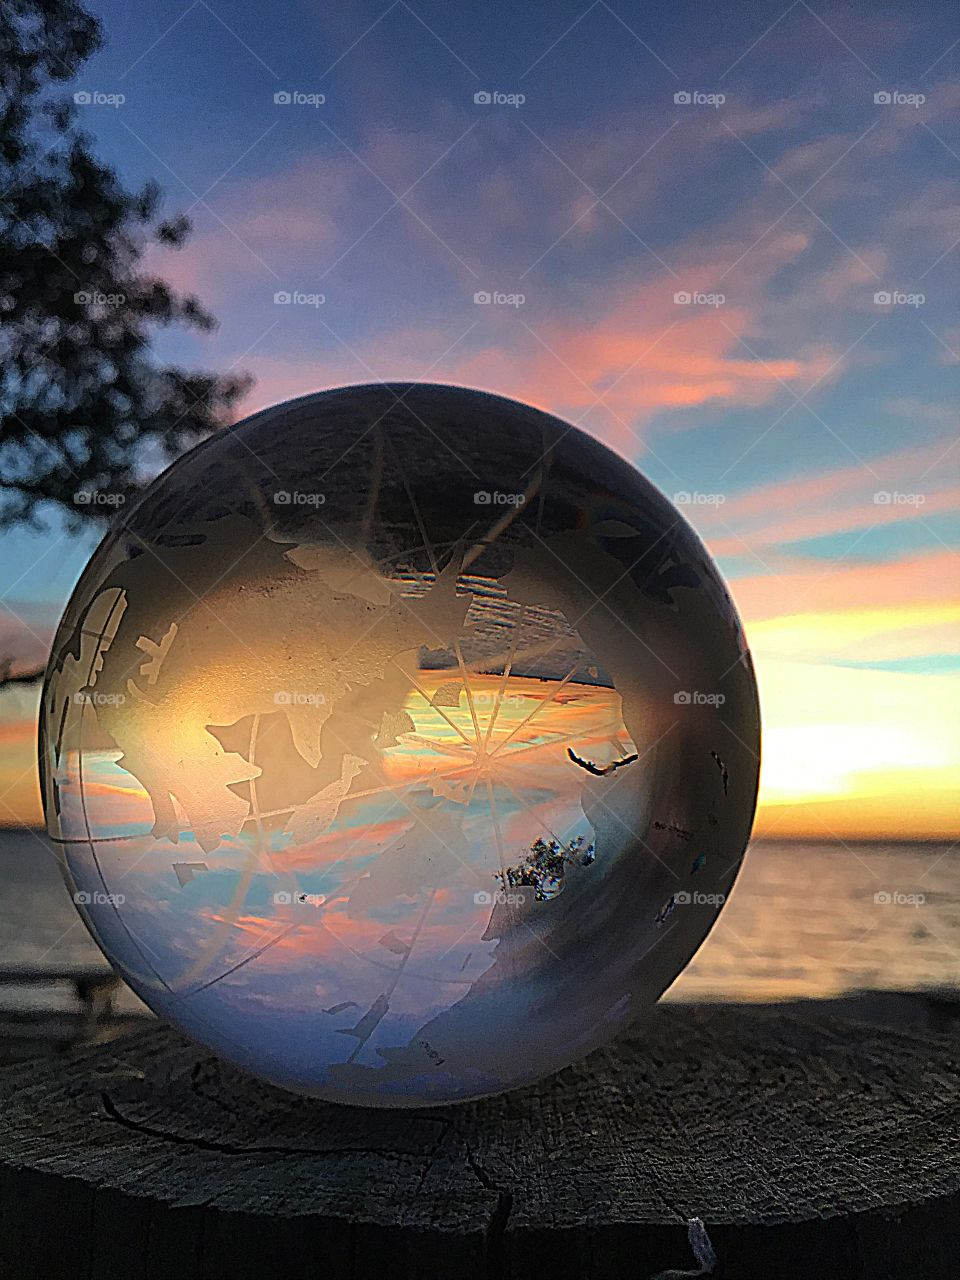 Sunset Extravaganza - sunset through the crystal ball, a refraction of light